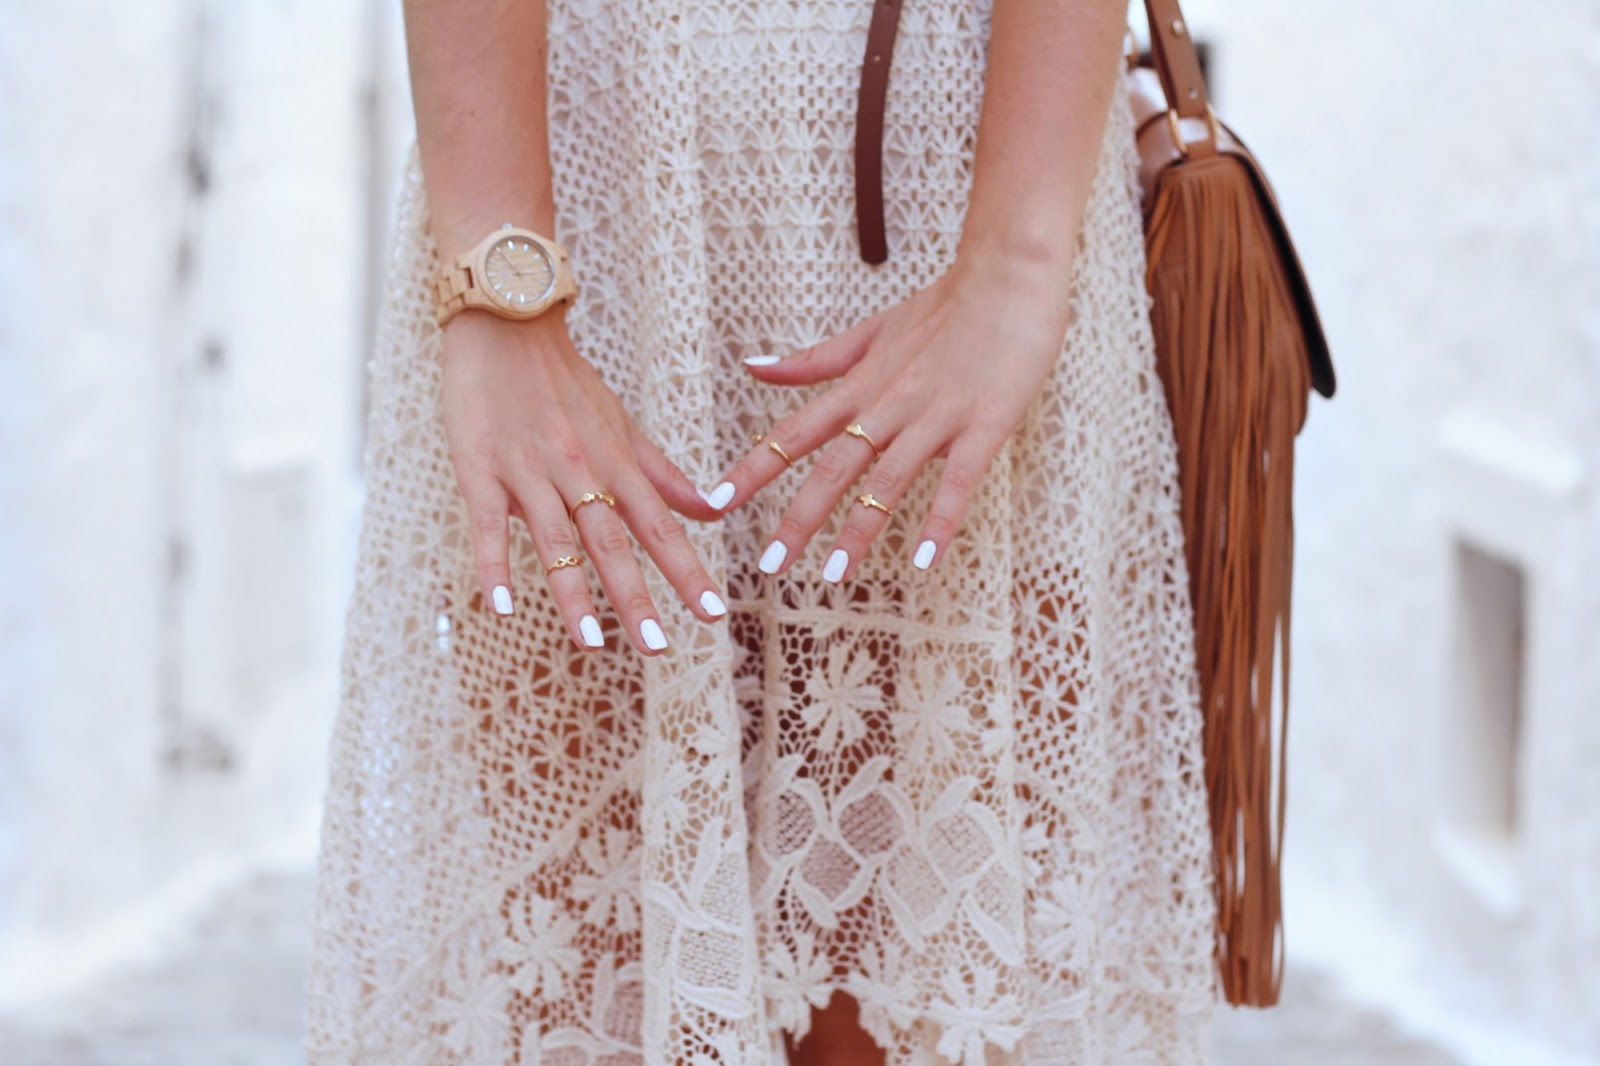 fashion style blogger outfit ootd italian girl italy trend vogue glamour pescara garage indy chic boho lace fringes bijou brigitte zara hm jord wood watches midi knuckle rings